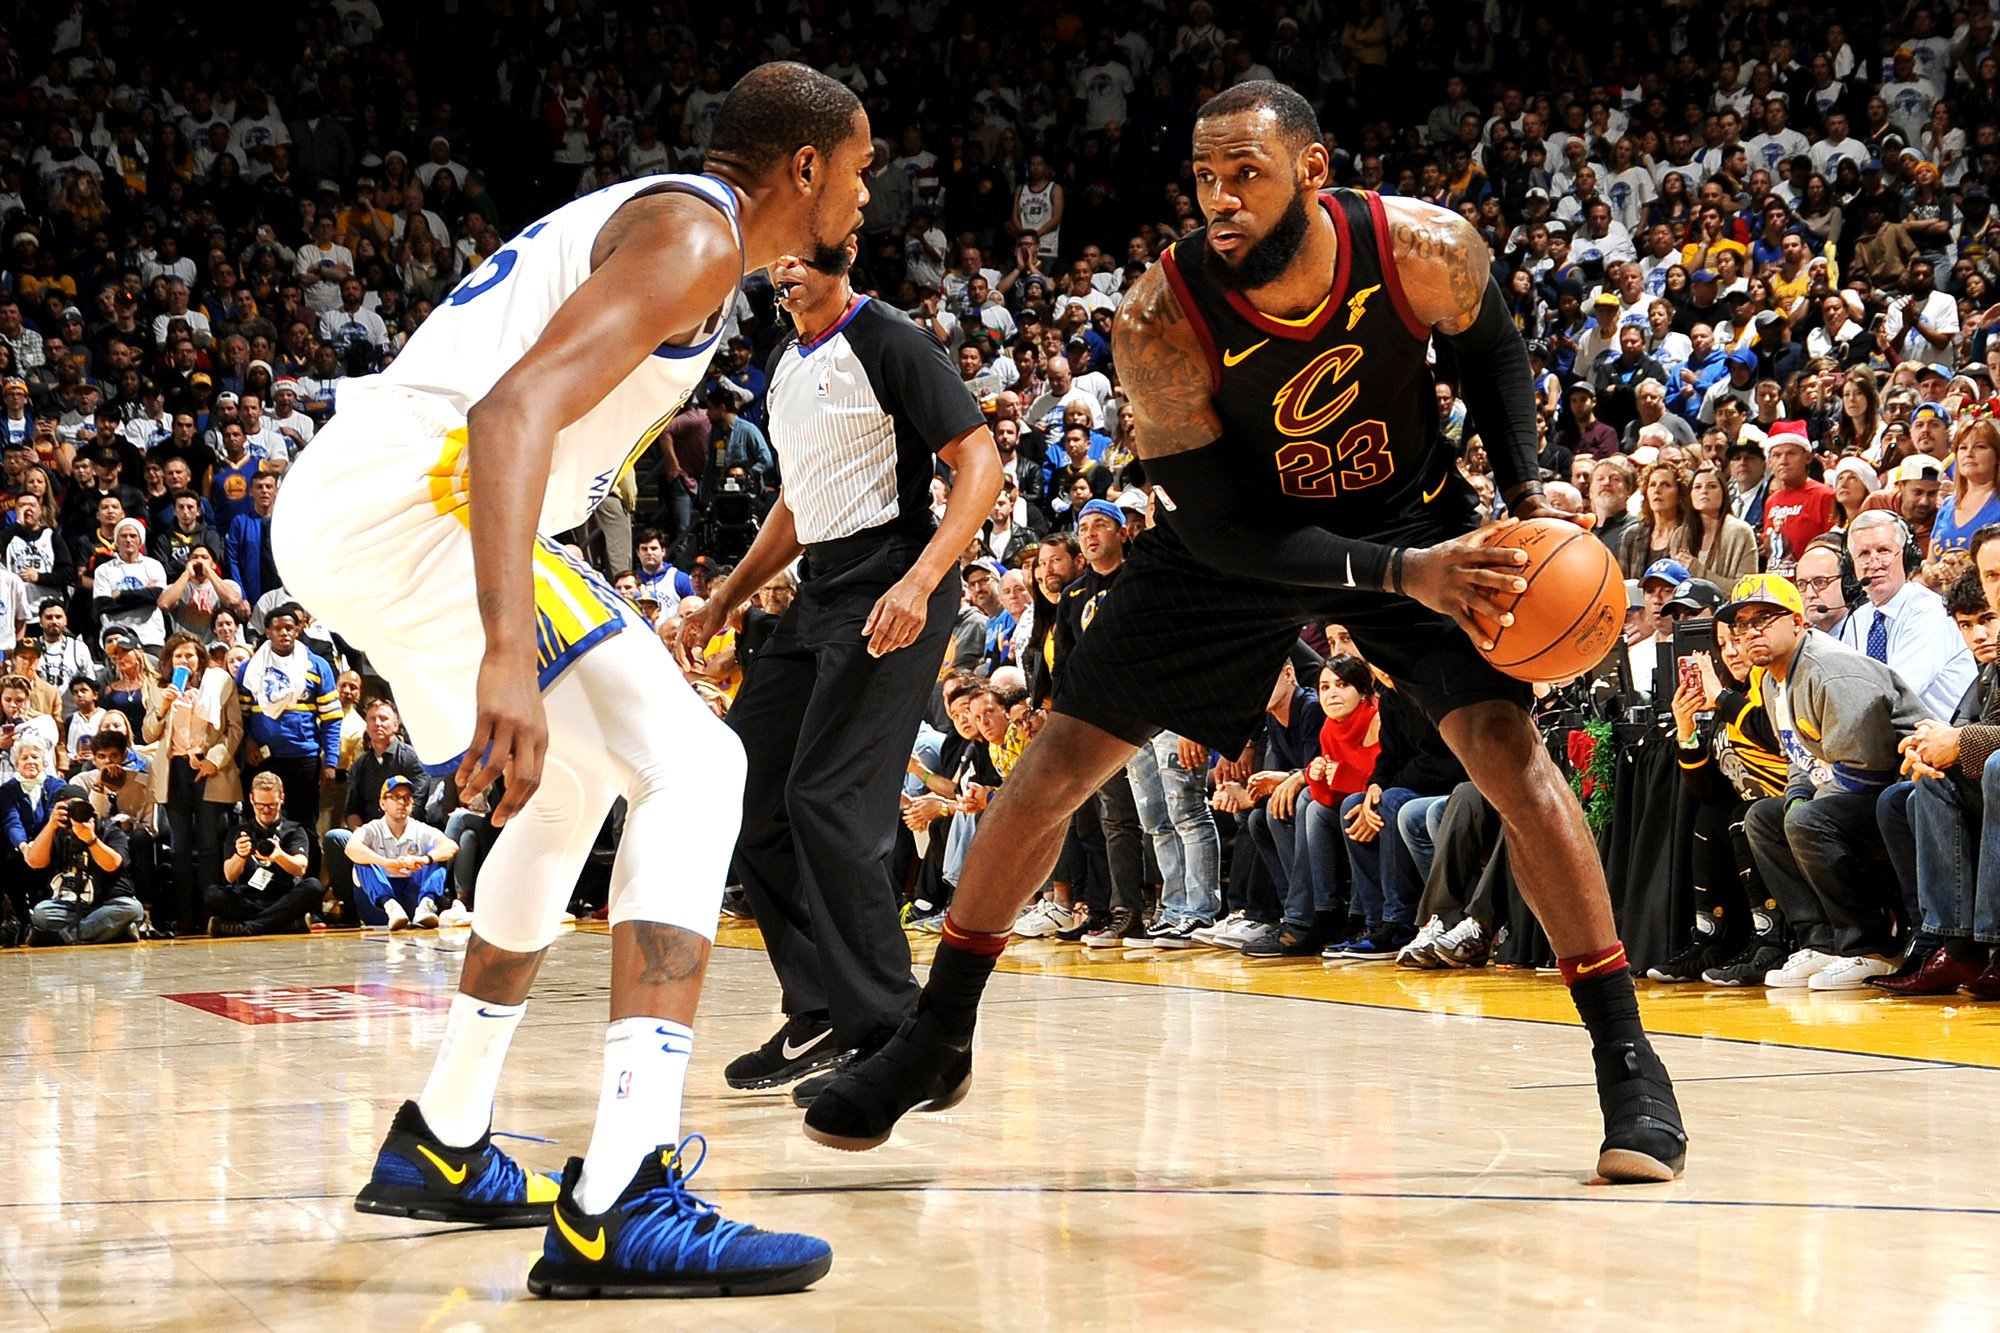 LeBron James' Warriors interest comes with Cavs at rock bottom